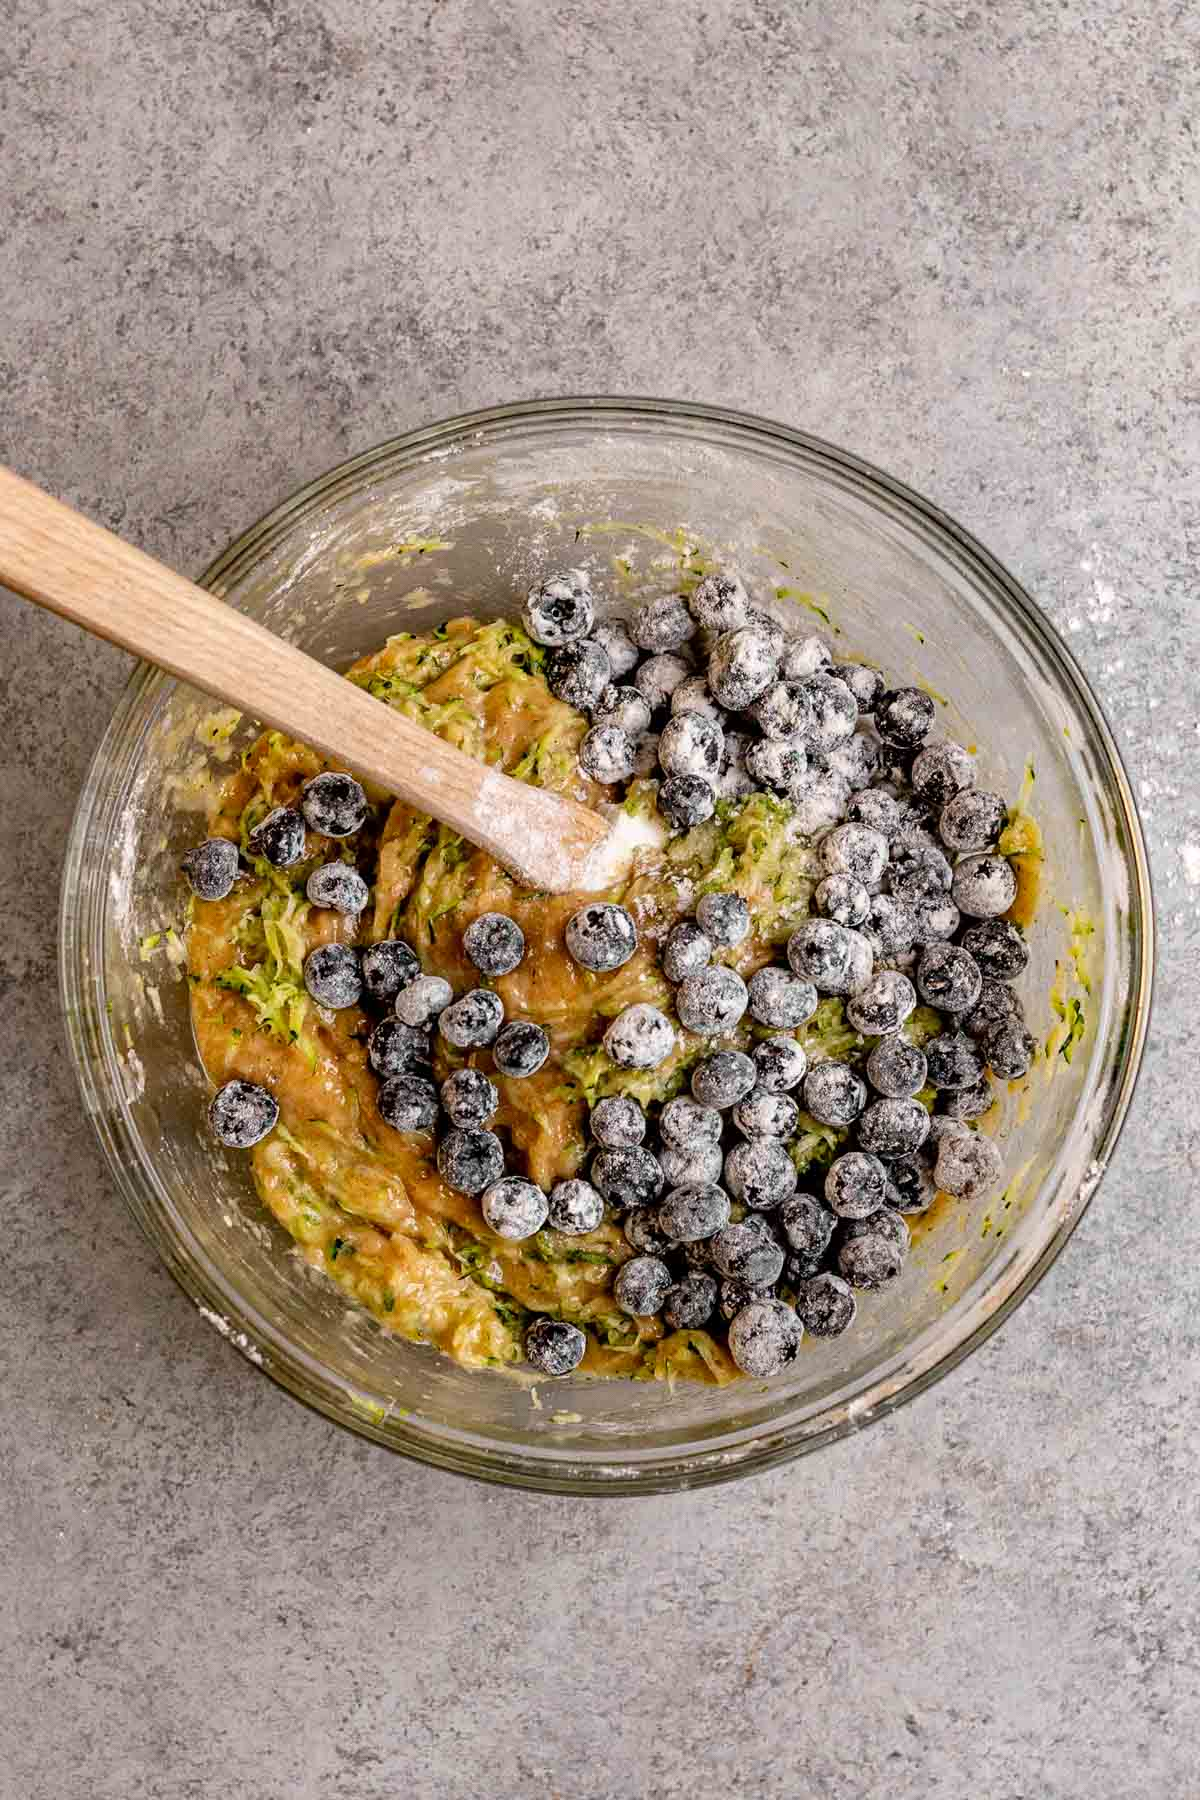 Blueberries added to batter for Blueberry Zucchini Bread in mixing bowl